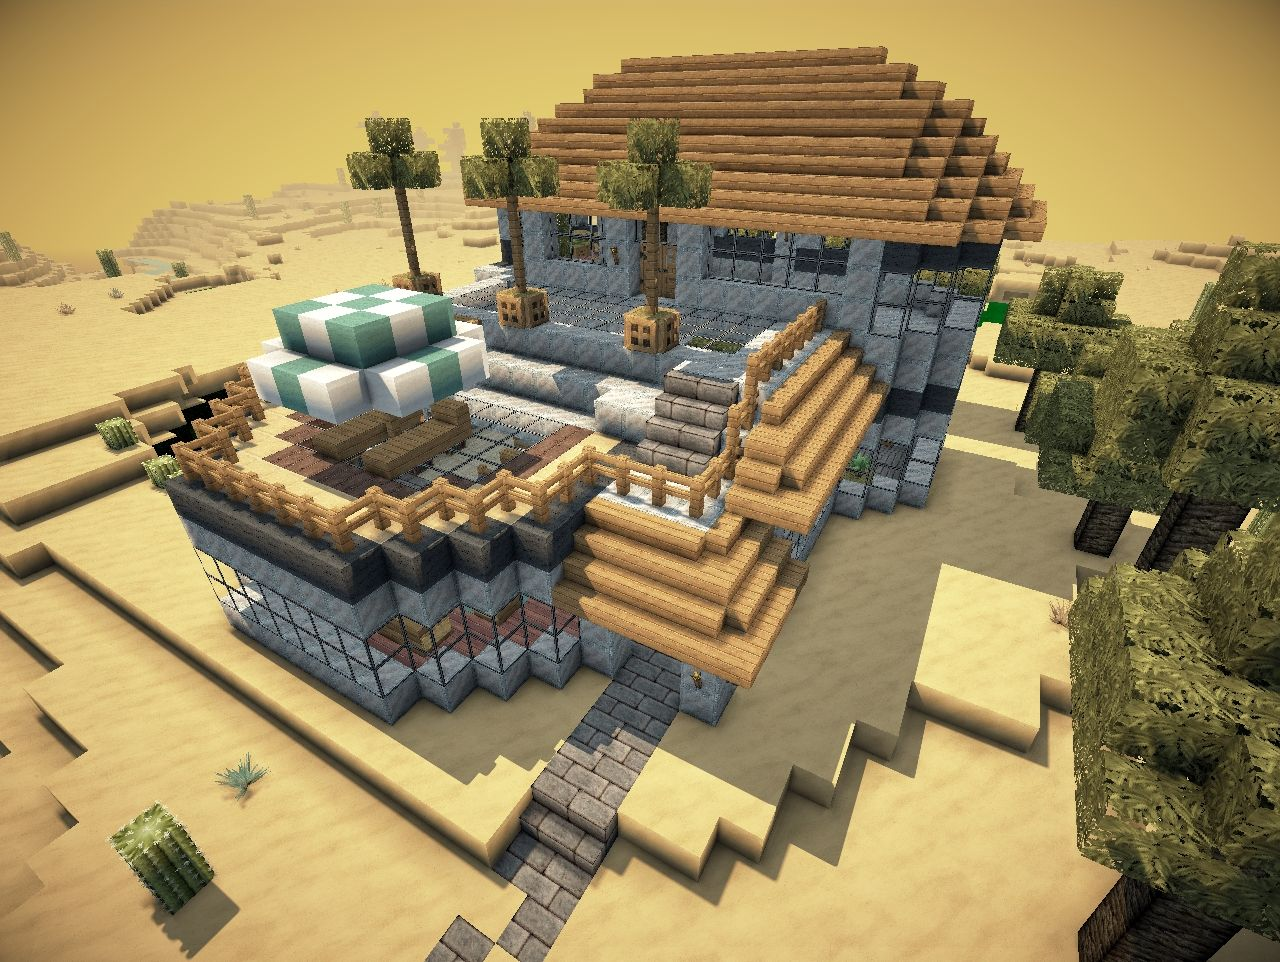 Modern desert mansion survival seed